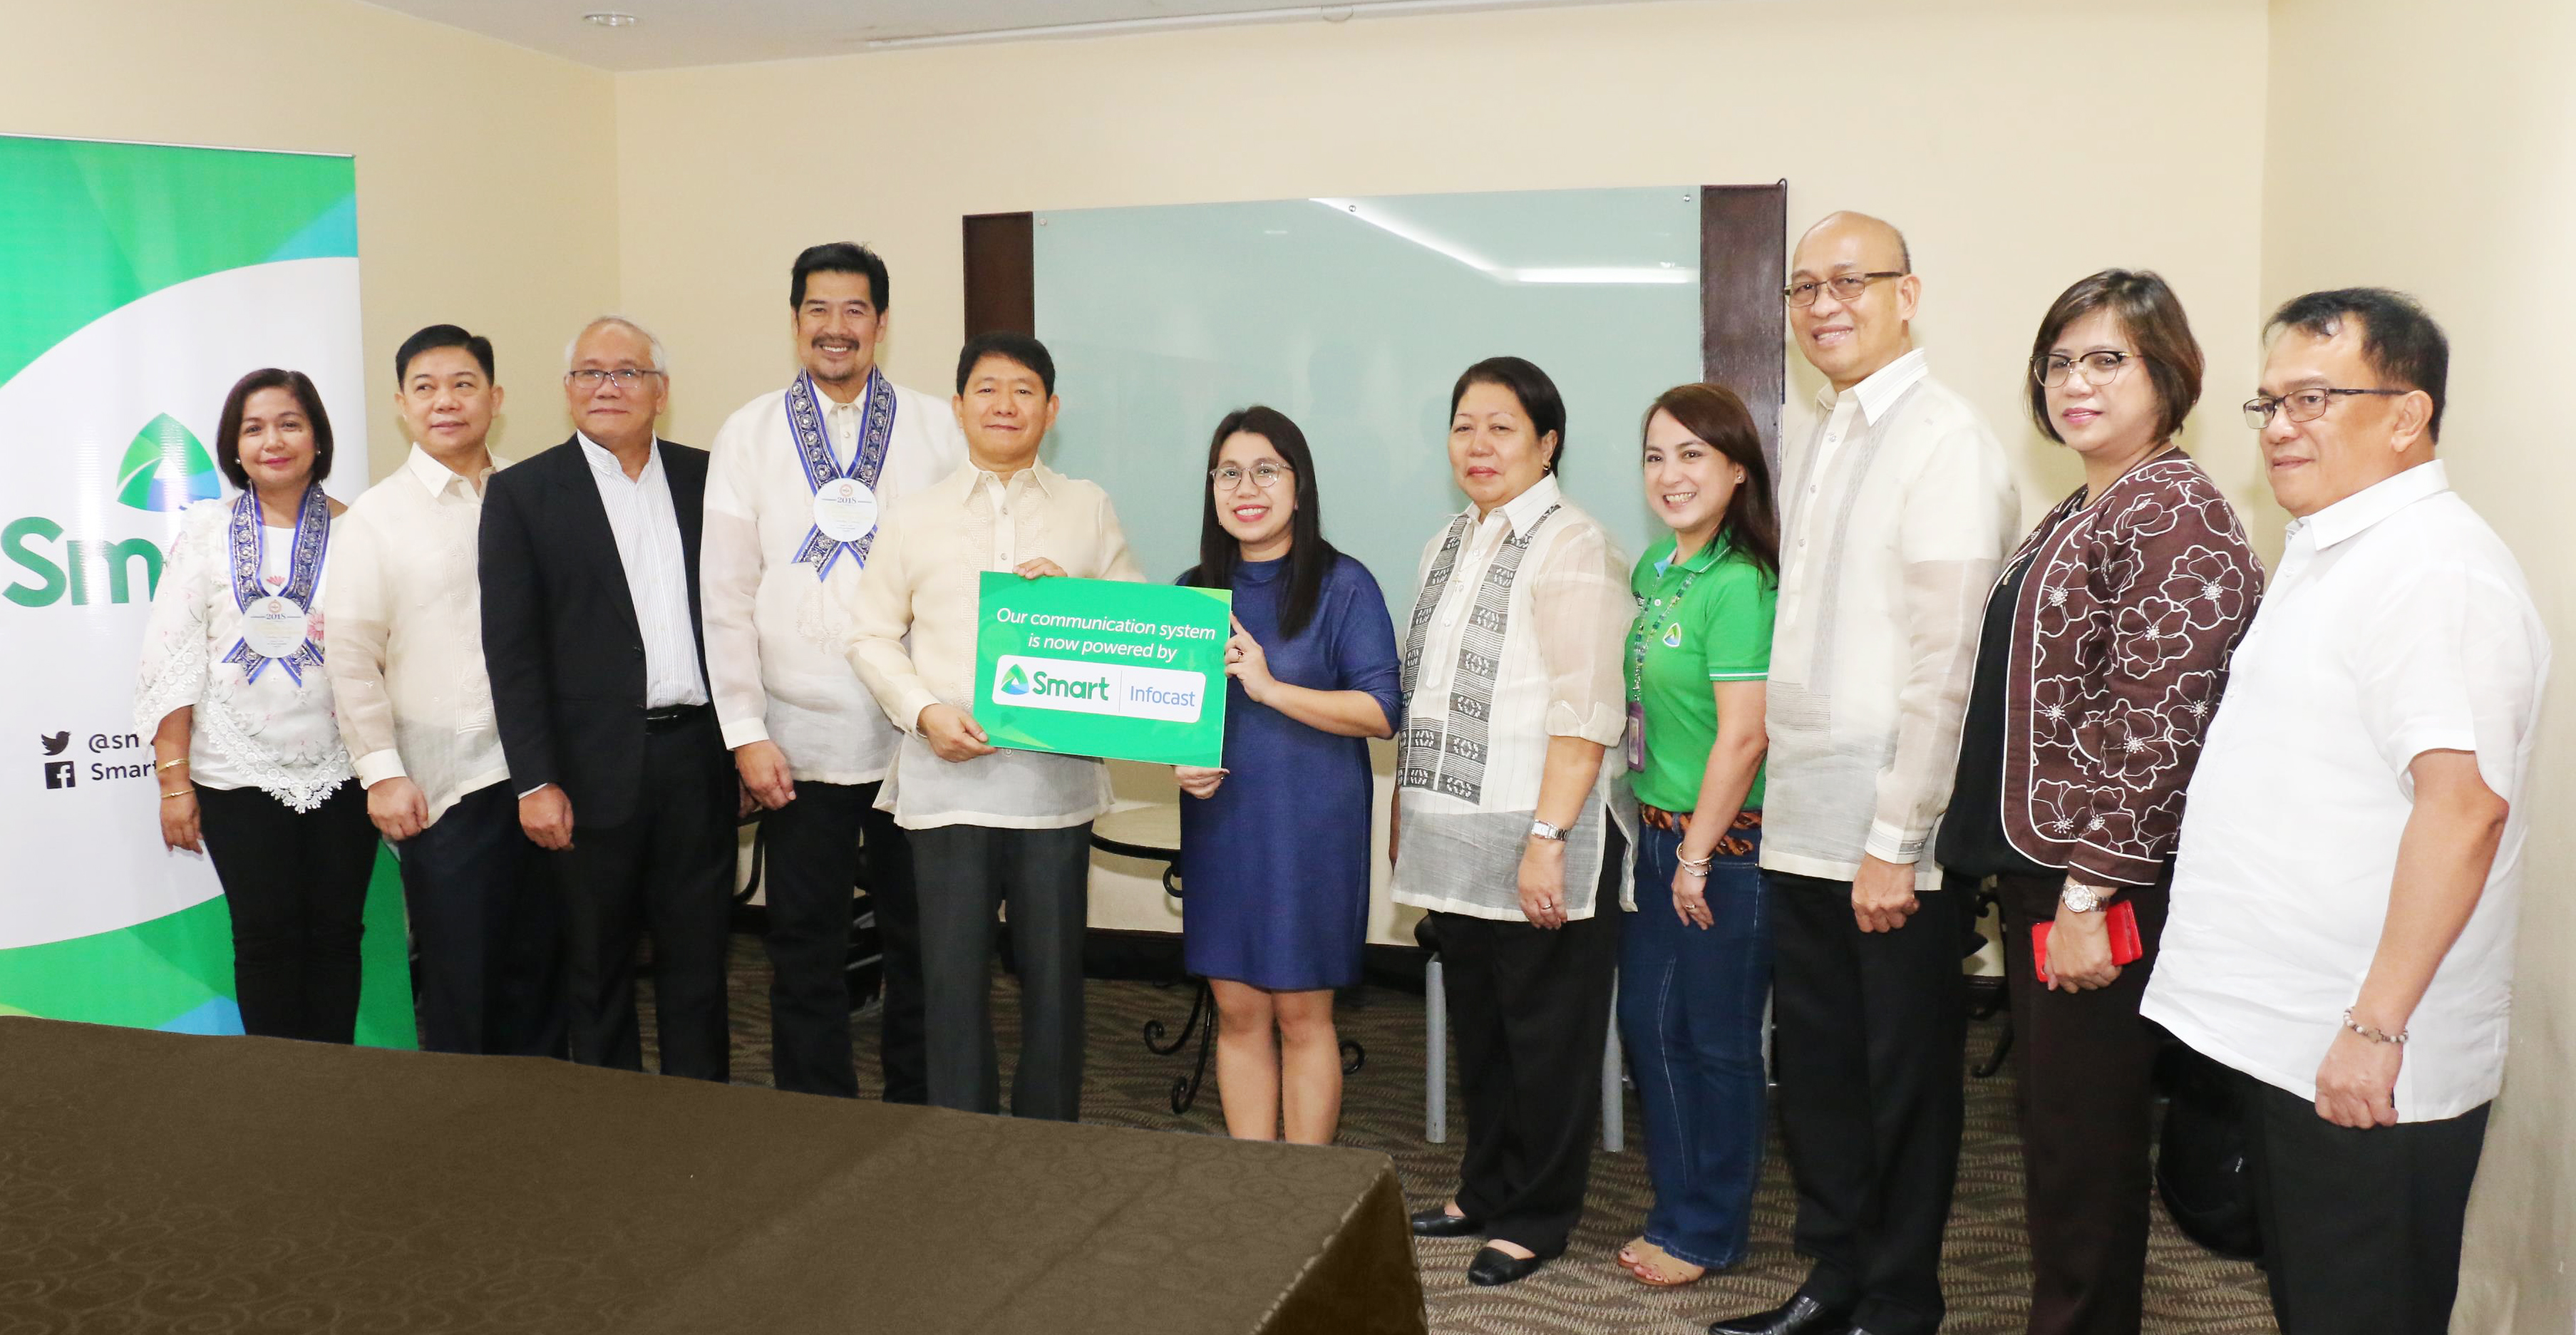 DILG taps Smart Infocast to boost communication, disaster preparedness